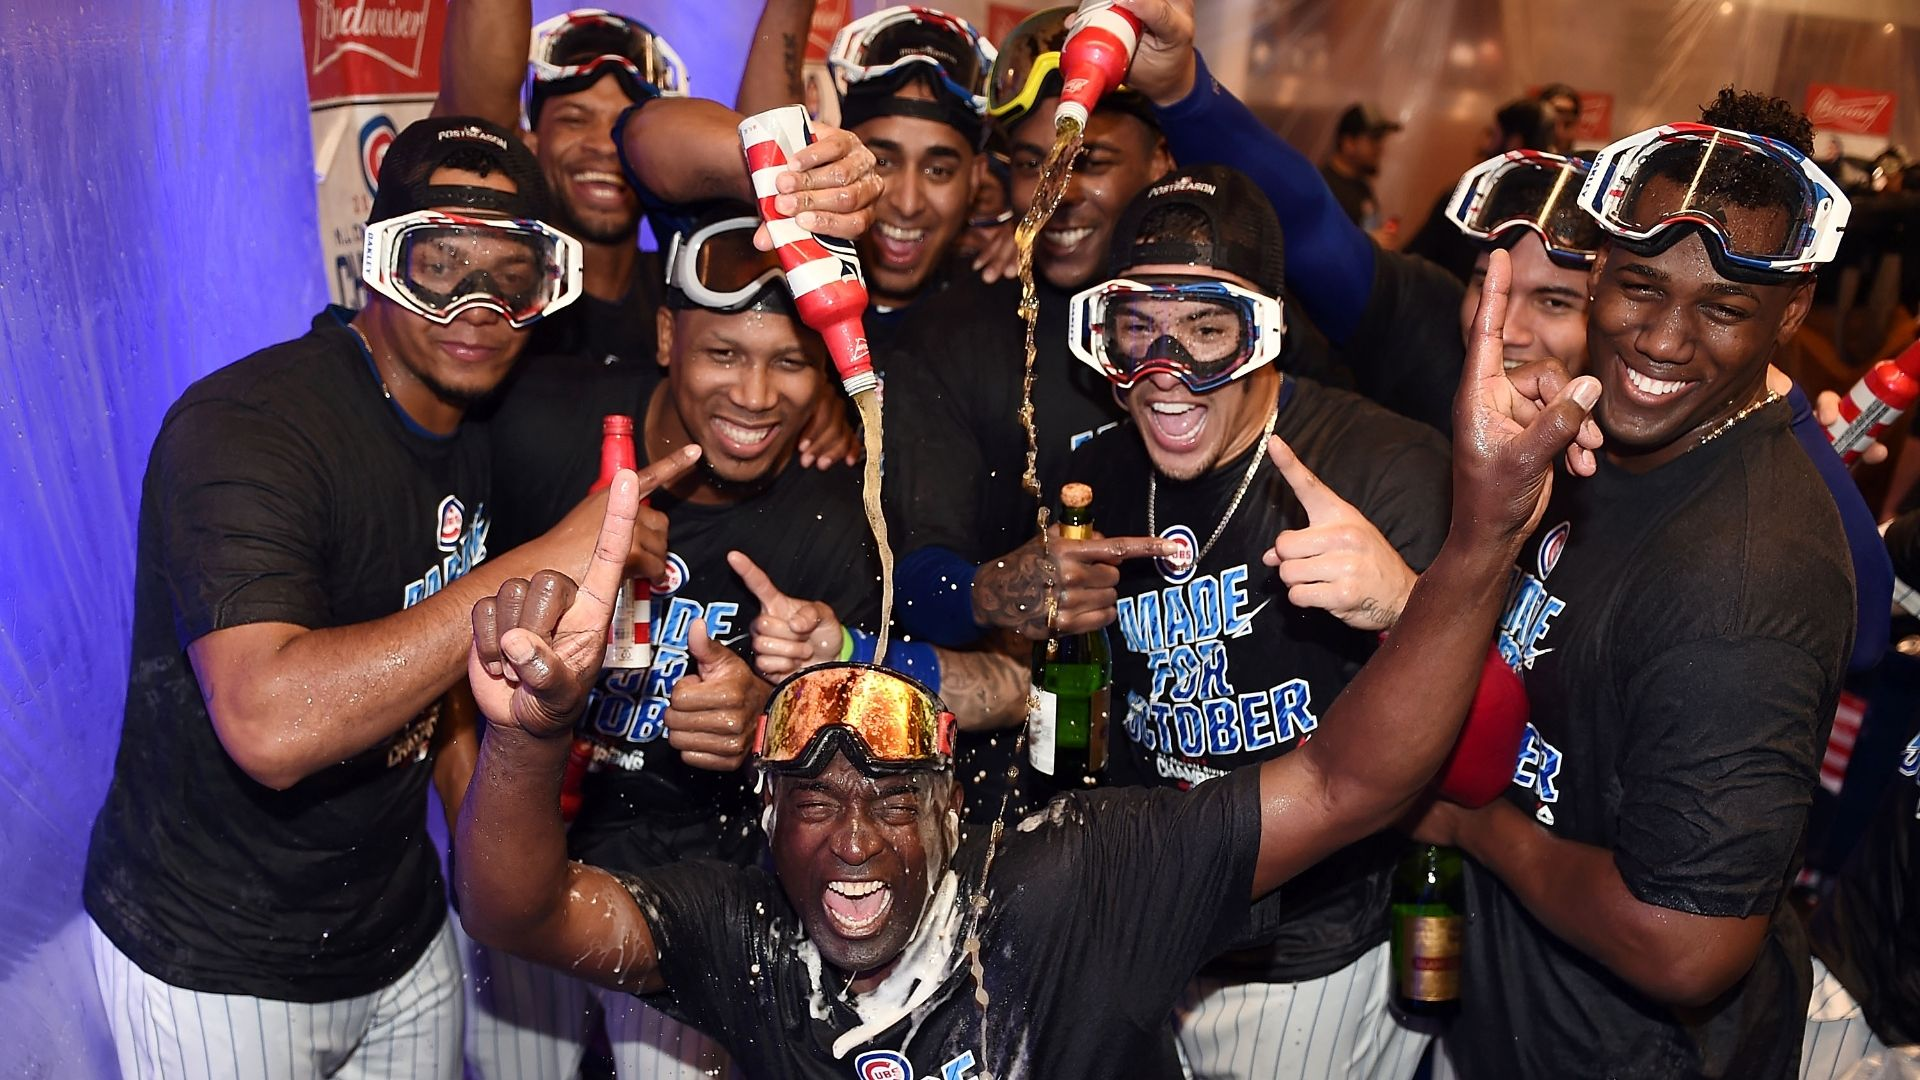 Cubs have a party room in their clubhouse